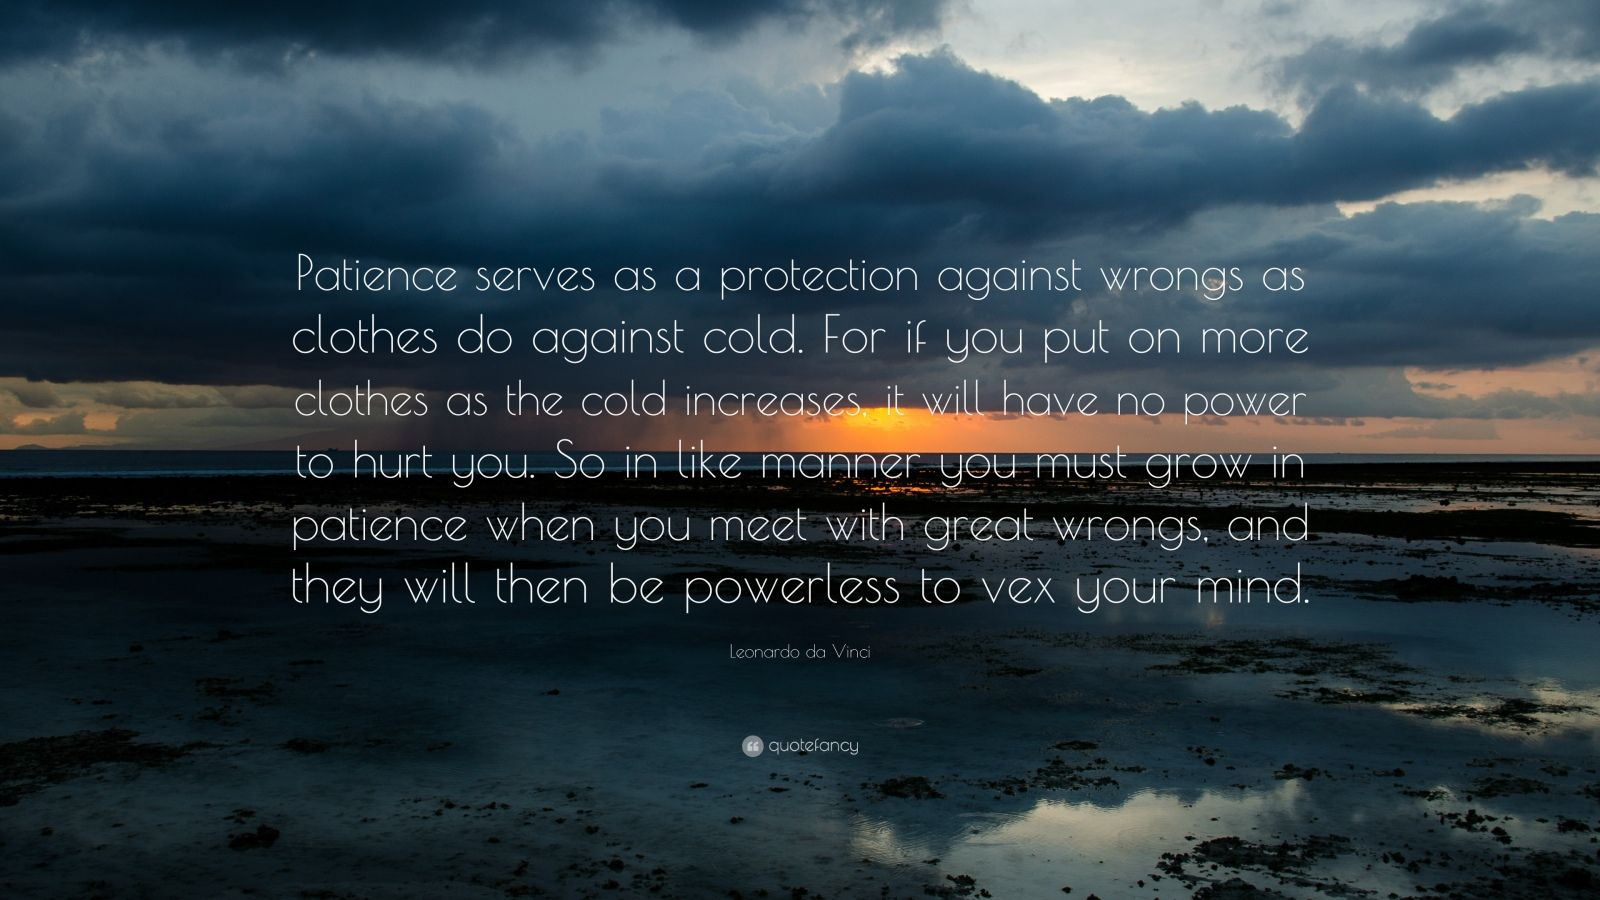 Willpower Quotes Wallpaper Patience Quotes 59 Wallpapers Quotefancy